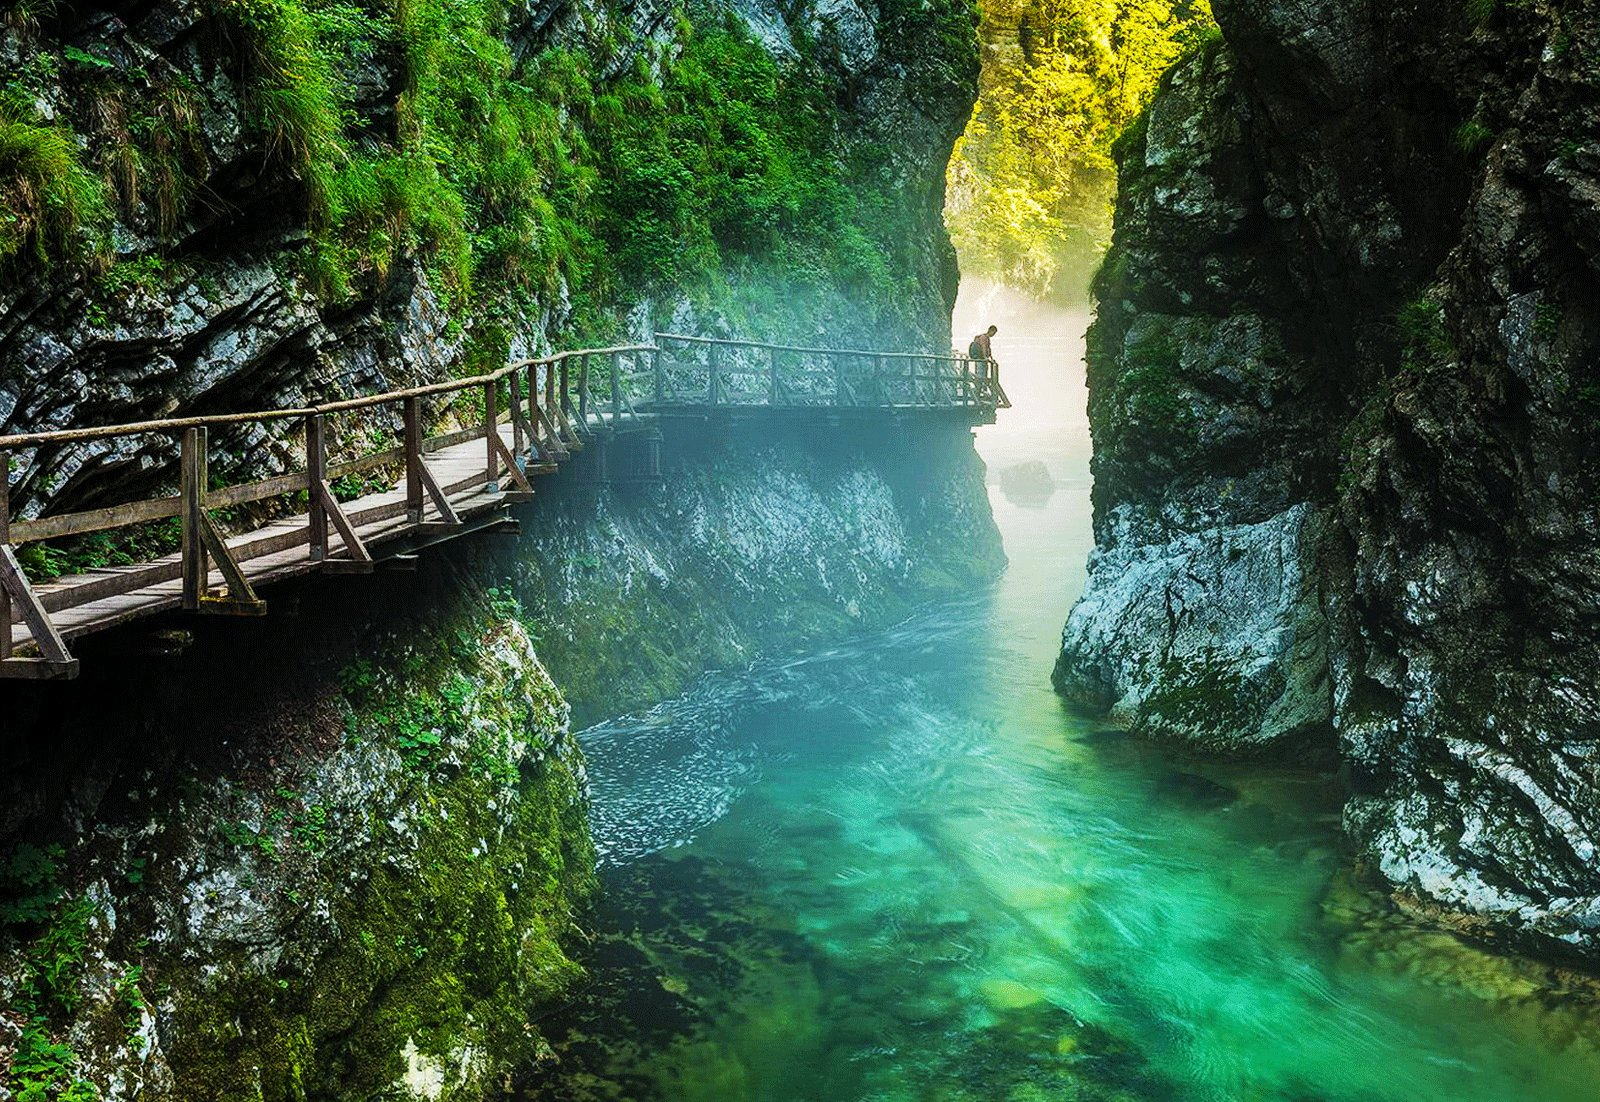 How to walk along the Vintgar gorge in Ljubljana